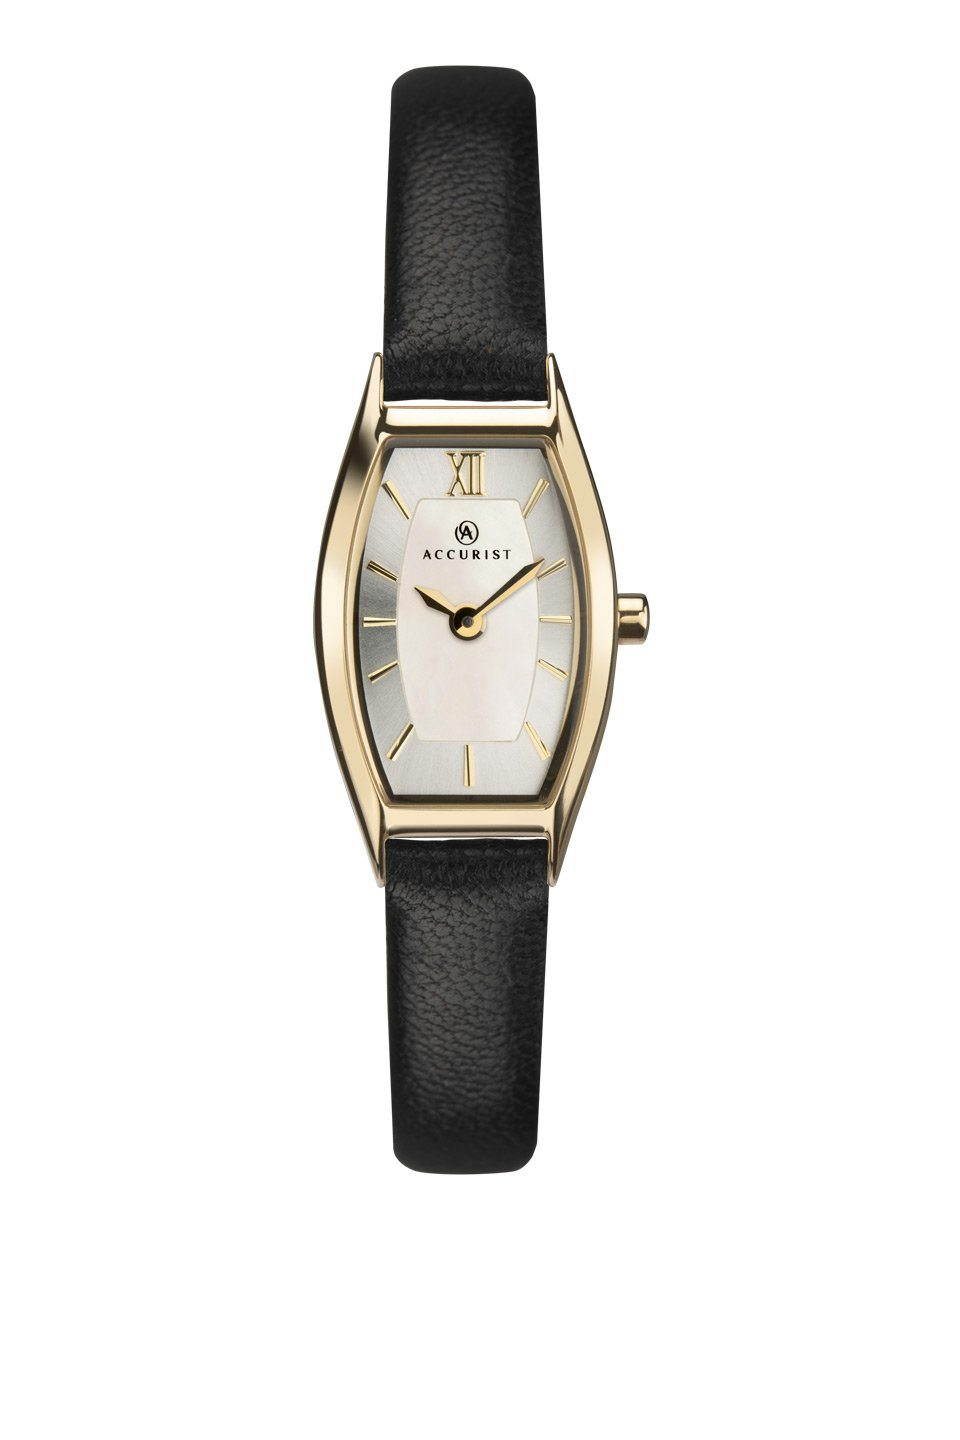 Accurist Ladies Watch with Black Strap 8275